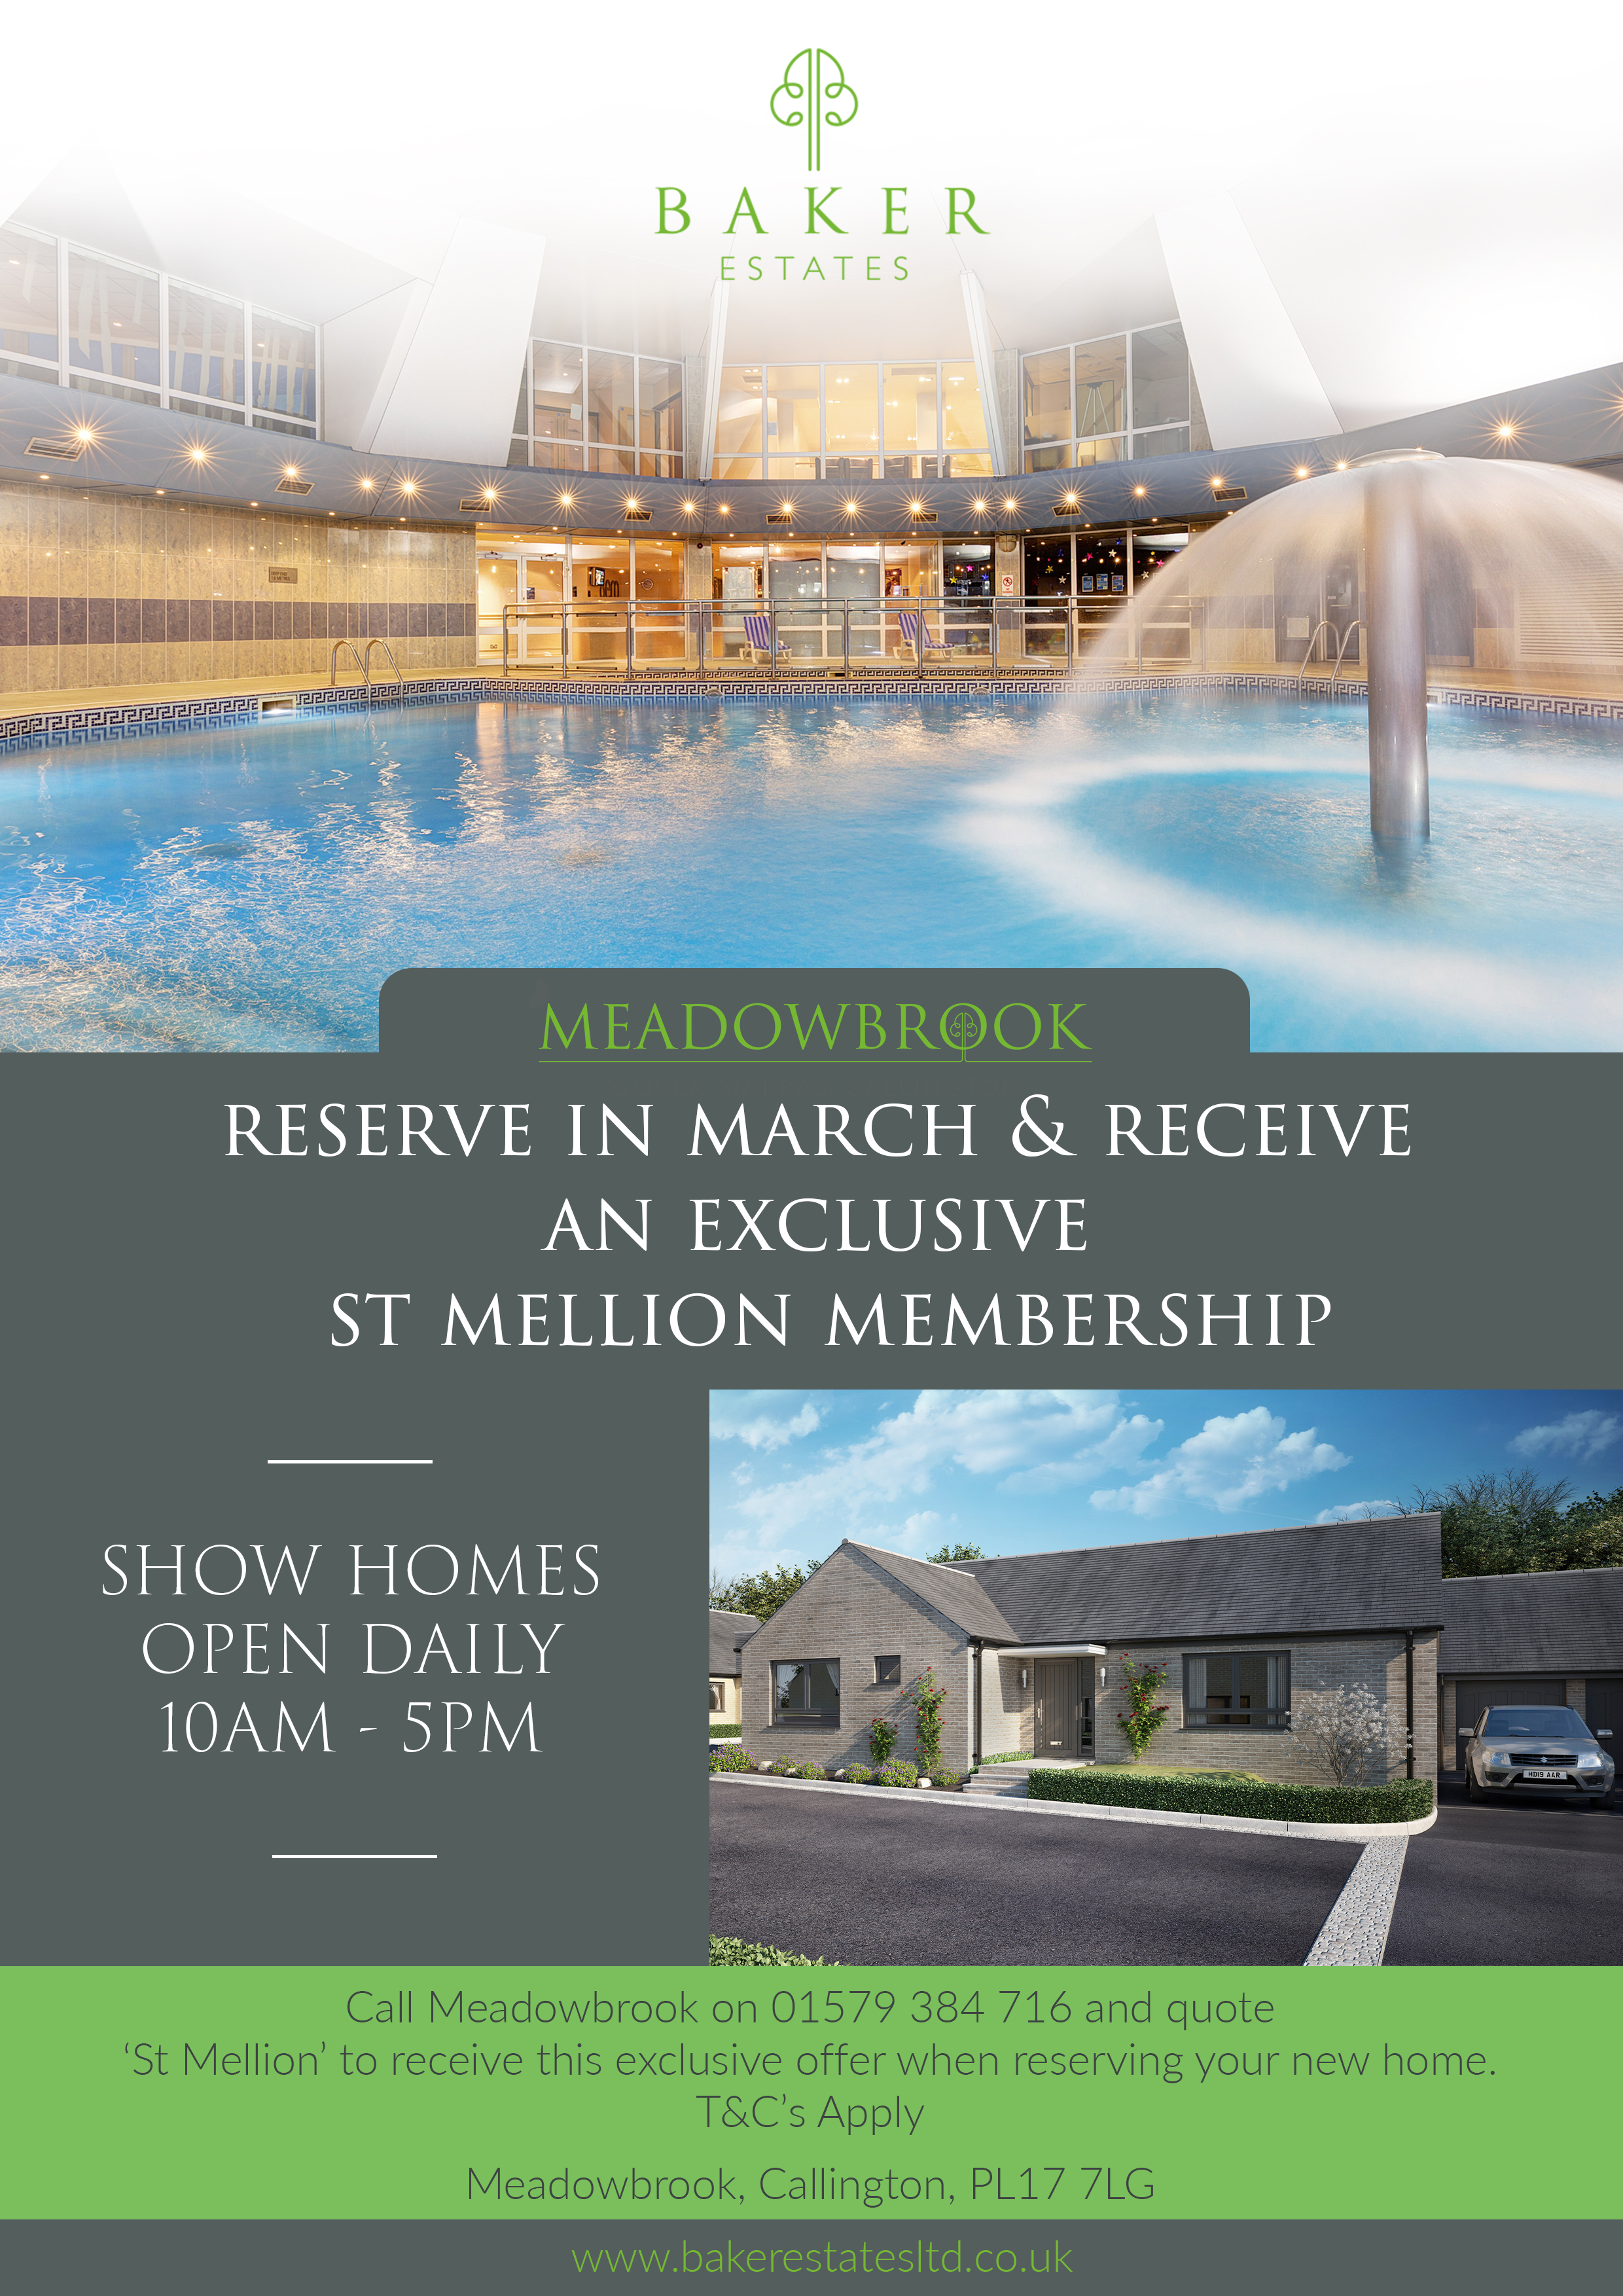 Reserve at Meadowbrook in March to receive an exclusive St Mellion Leisure Membership